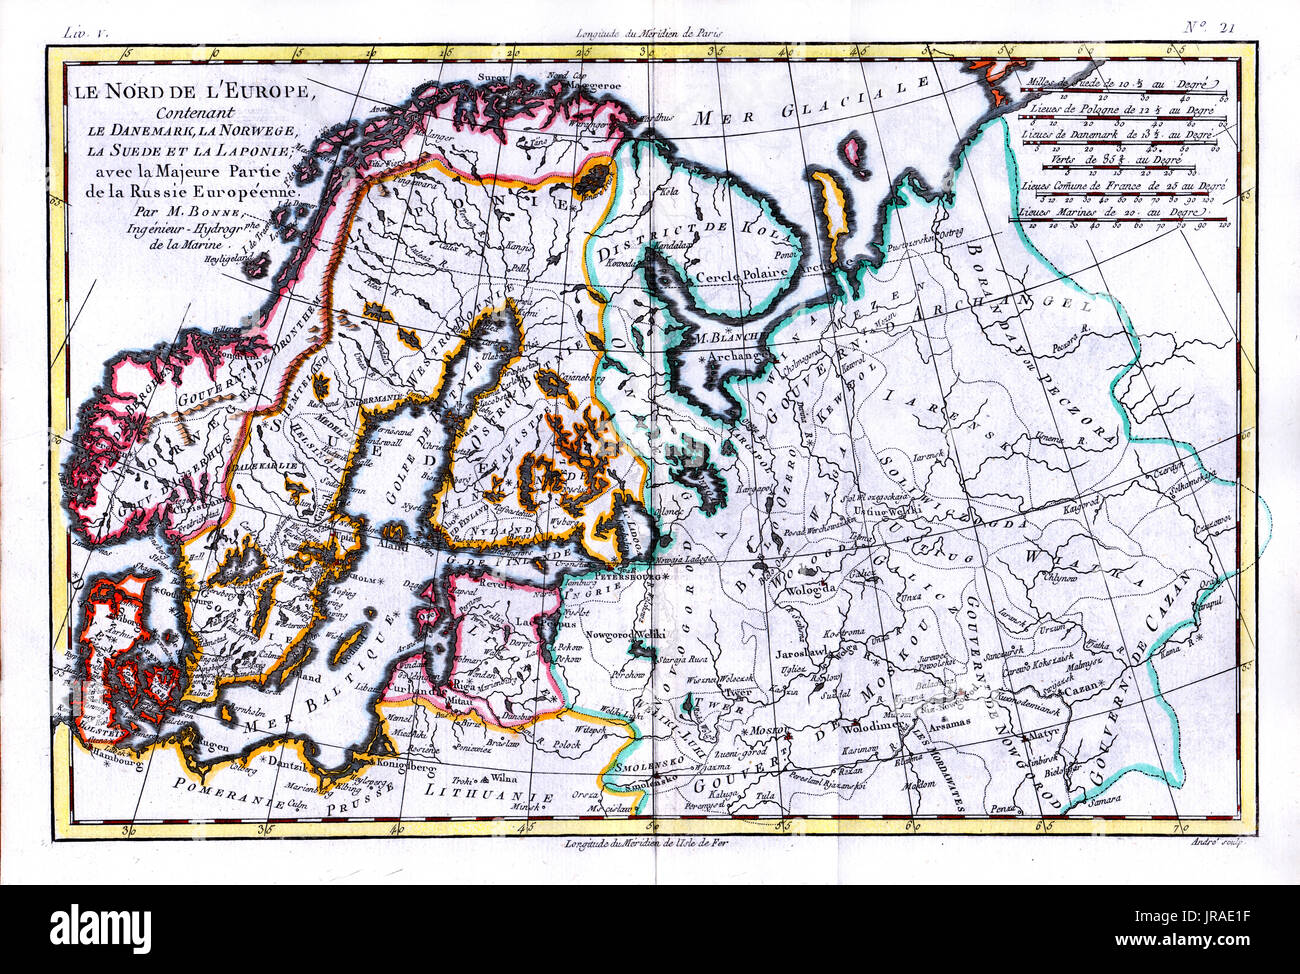 Old norway map stock photos old norway map stock images alamy 1780 bonne antique map of scandinavia including sweden finland norway and denmark gumiabroncs Gallery